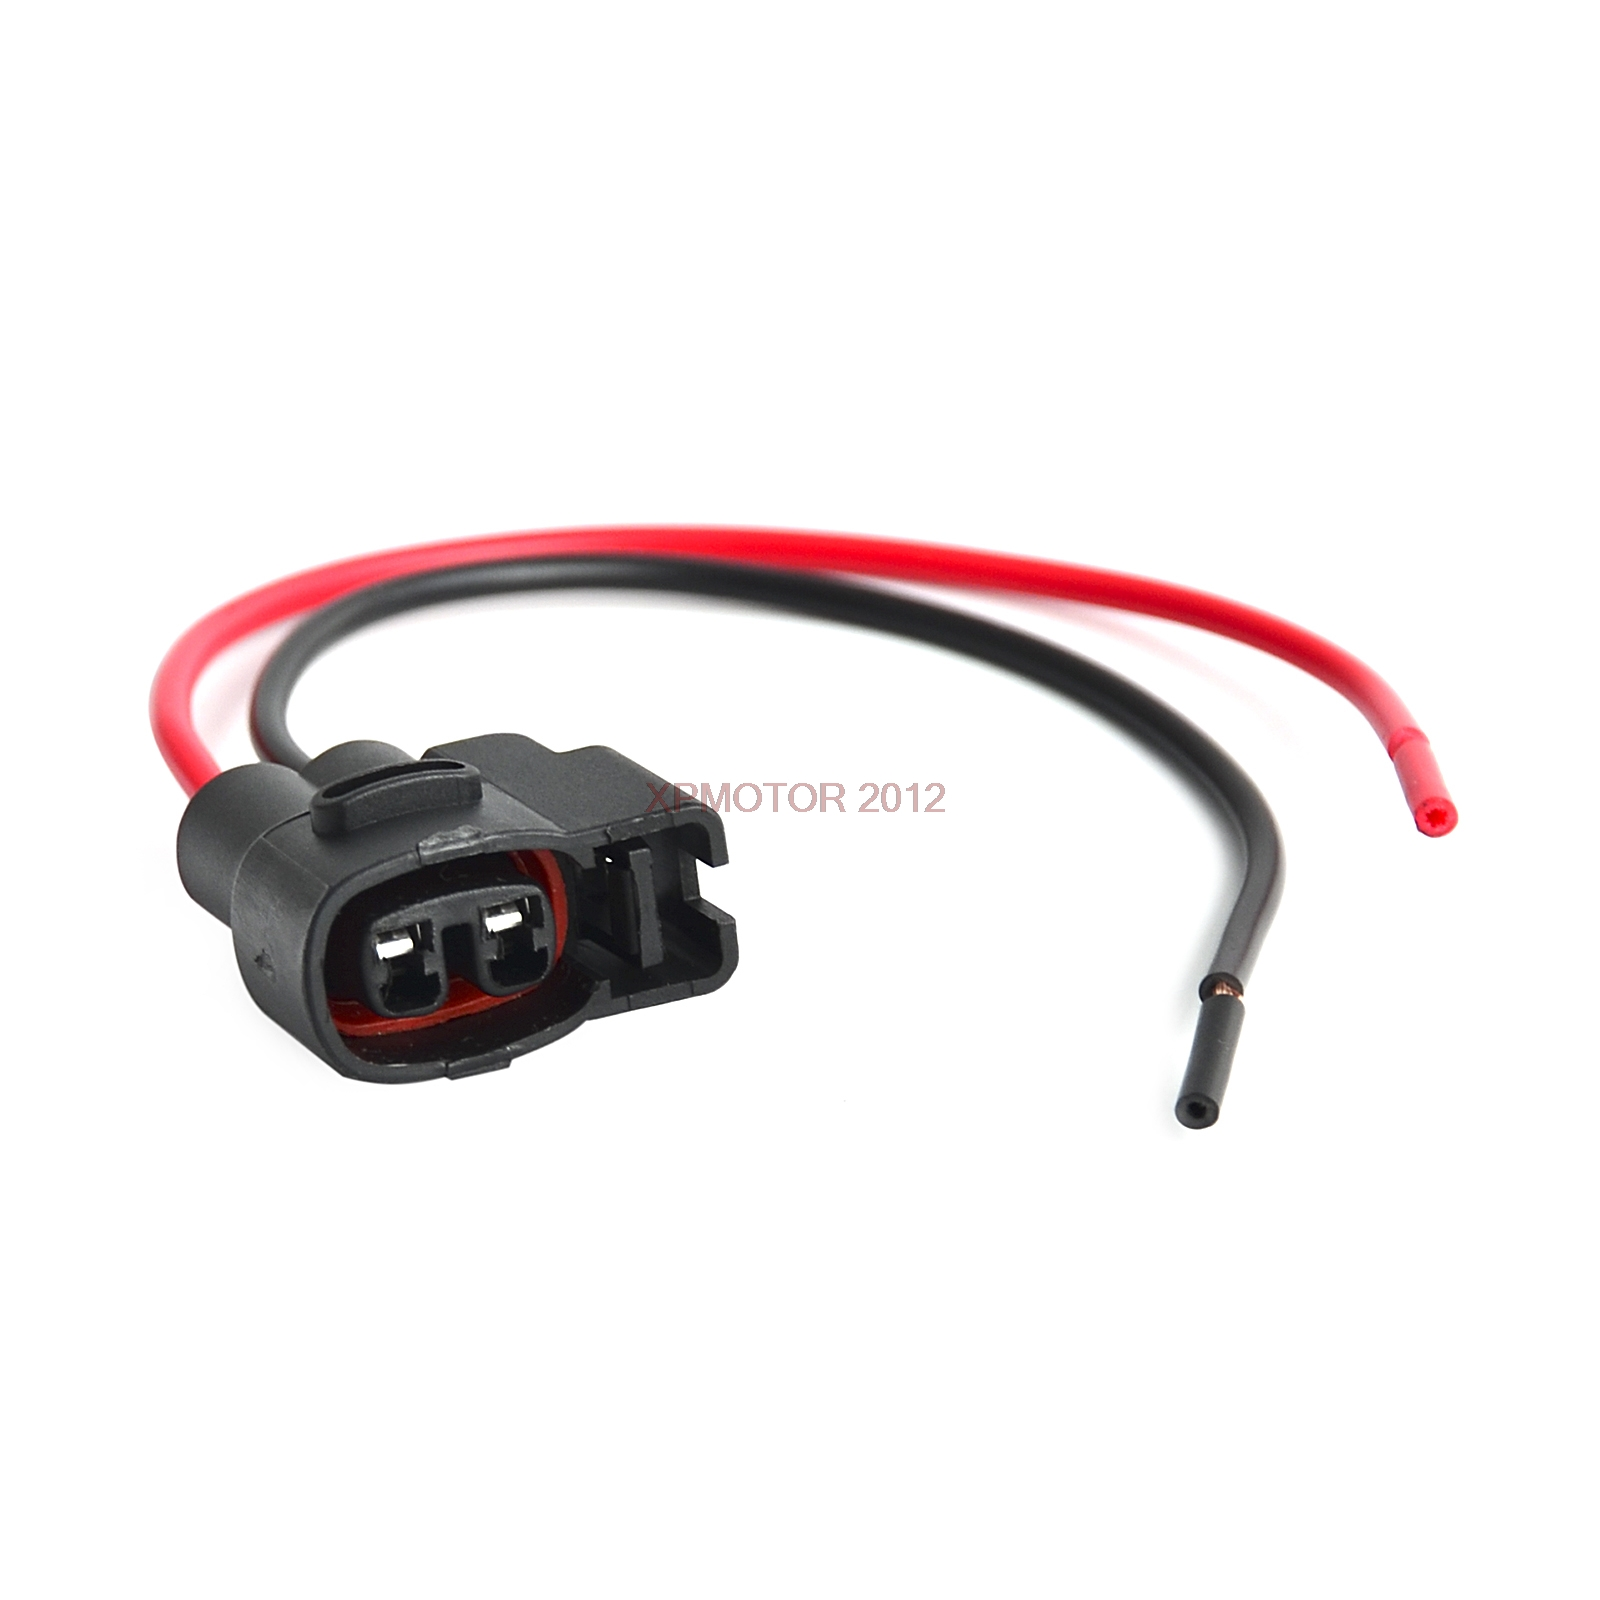 6 Pcs Set Ignition Coil Connector Pigtail Plug Harness For Toyota Wiring Supera Supra Lexus In From Automobiles Motorcycles On Alibaba